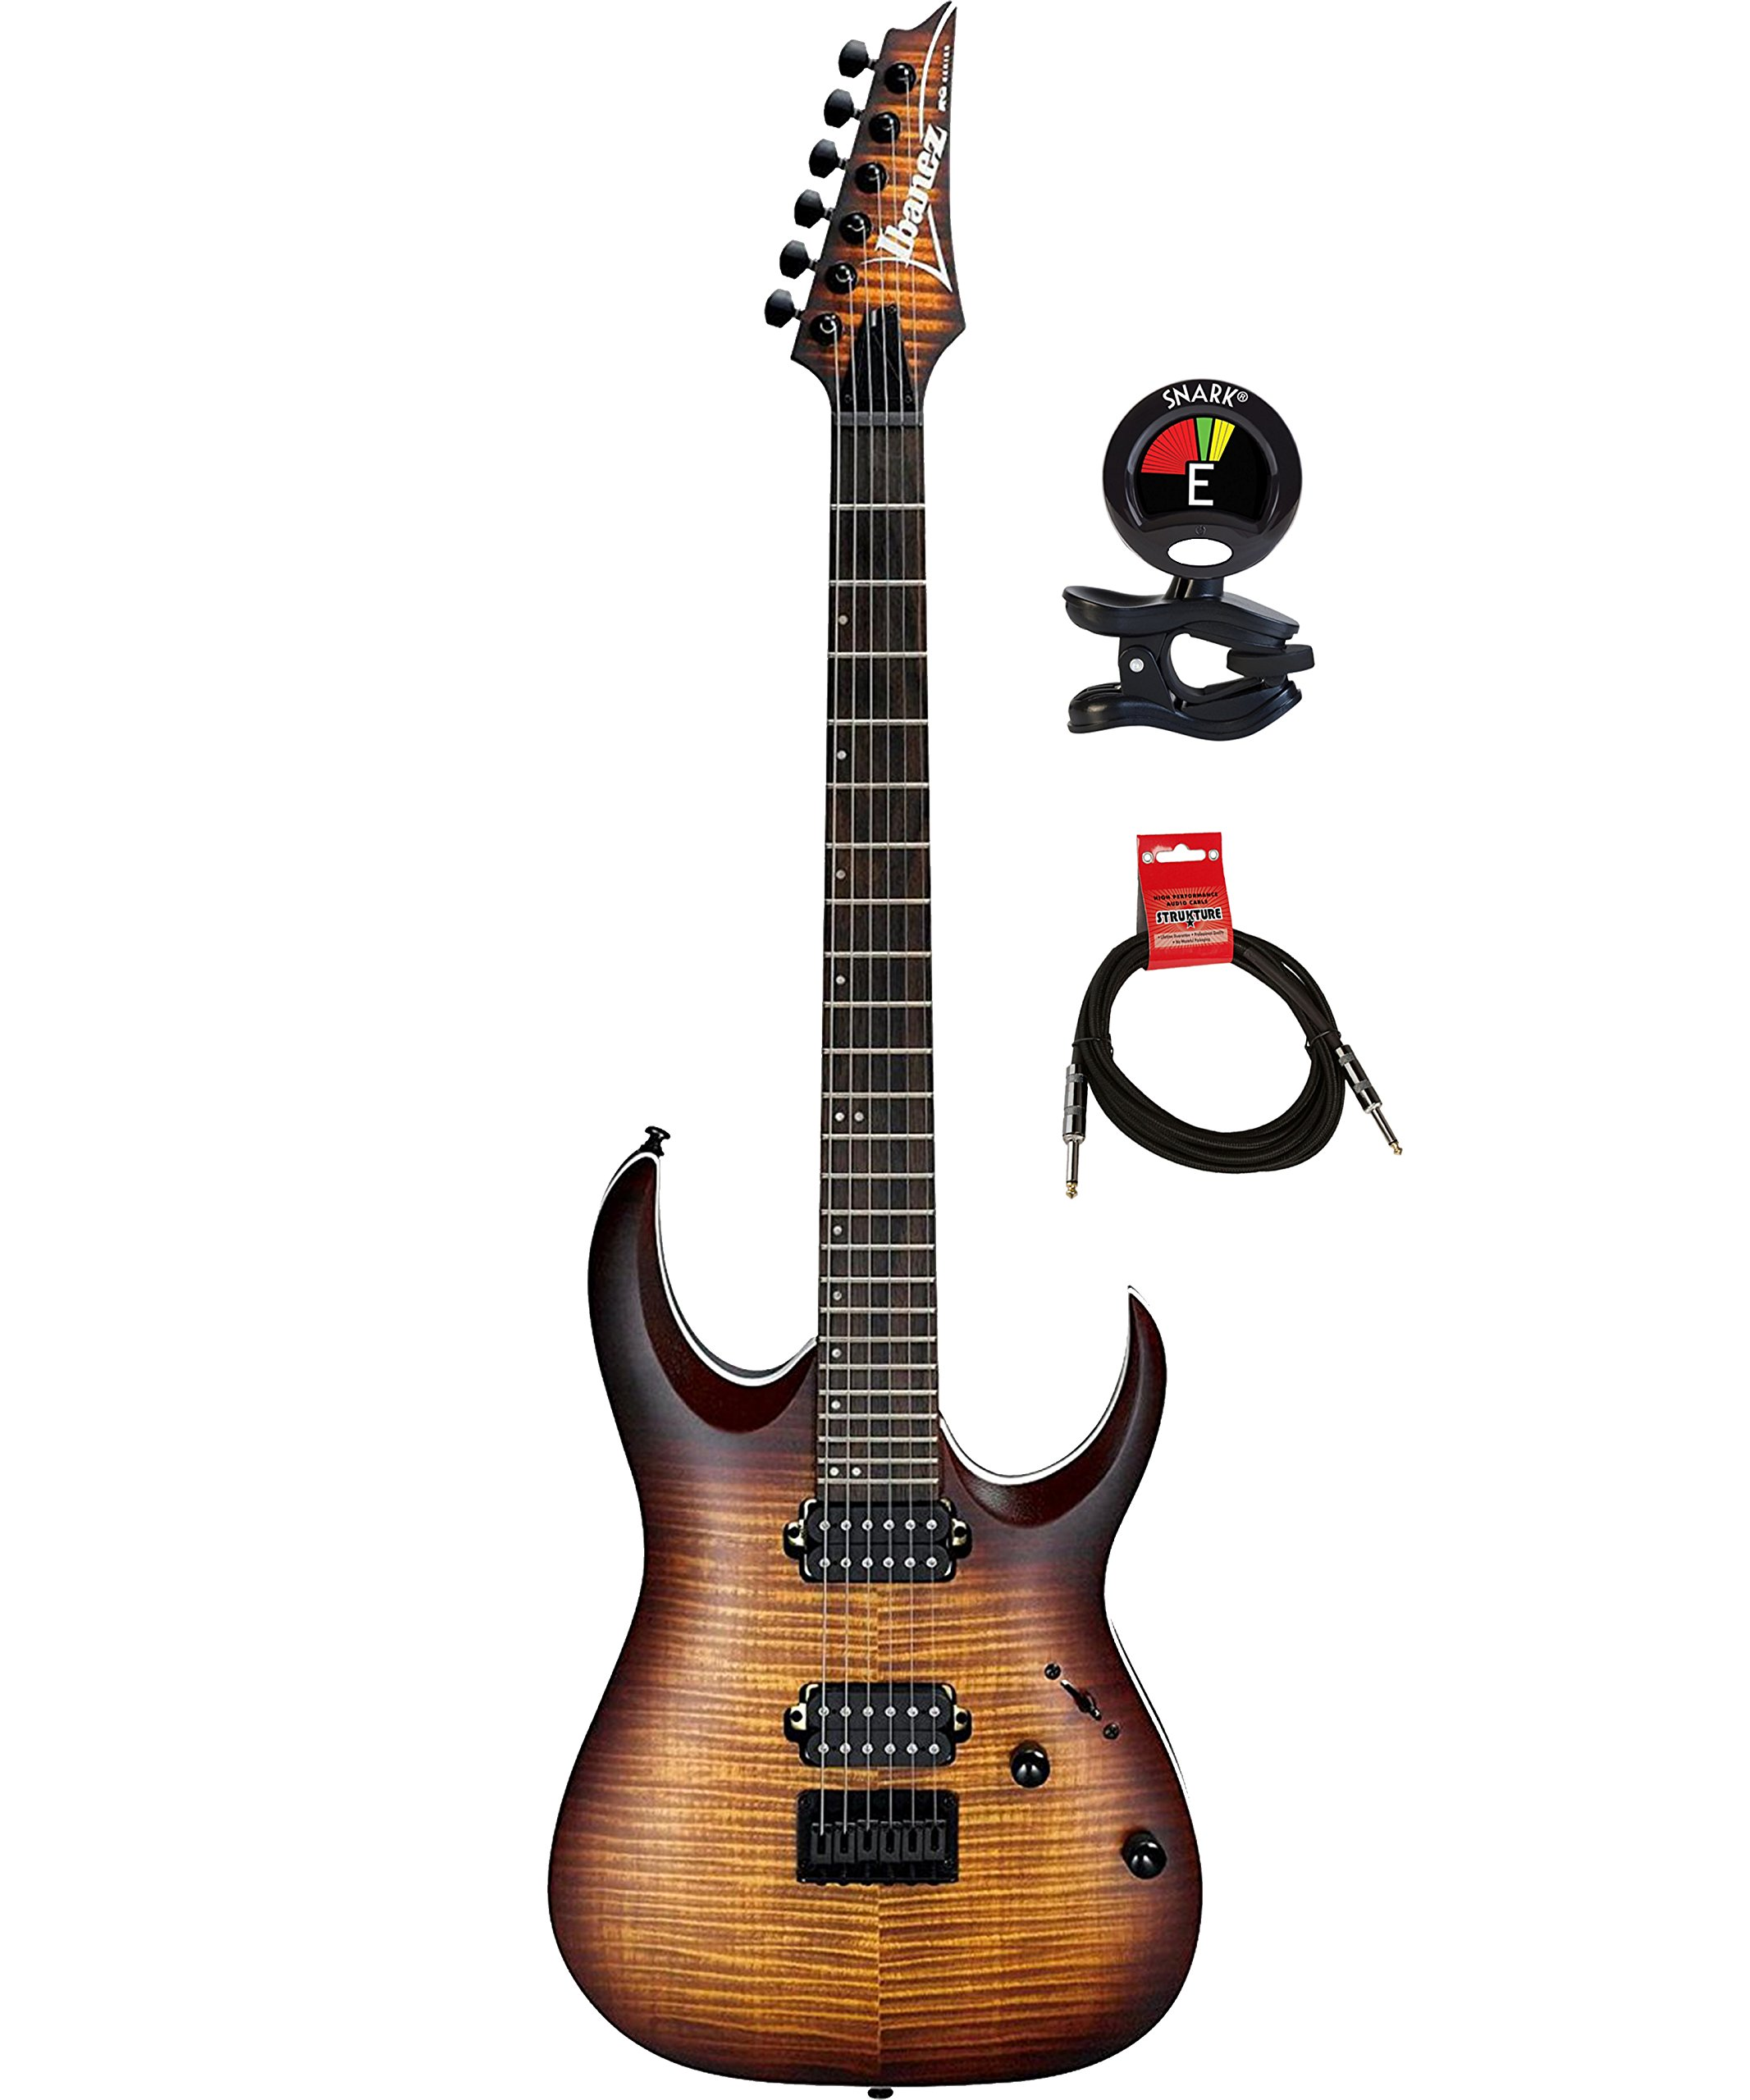 Cheap Ibanez RGA42FMDEF RGA Series 6 Strings Solid Body Electric Guitar Package with Clip on Guitar Tuner and Instrument Cable (Dragon Eye Burst Flat) Black Friday & Cyber Monday 2019